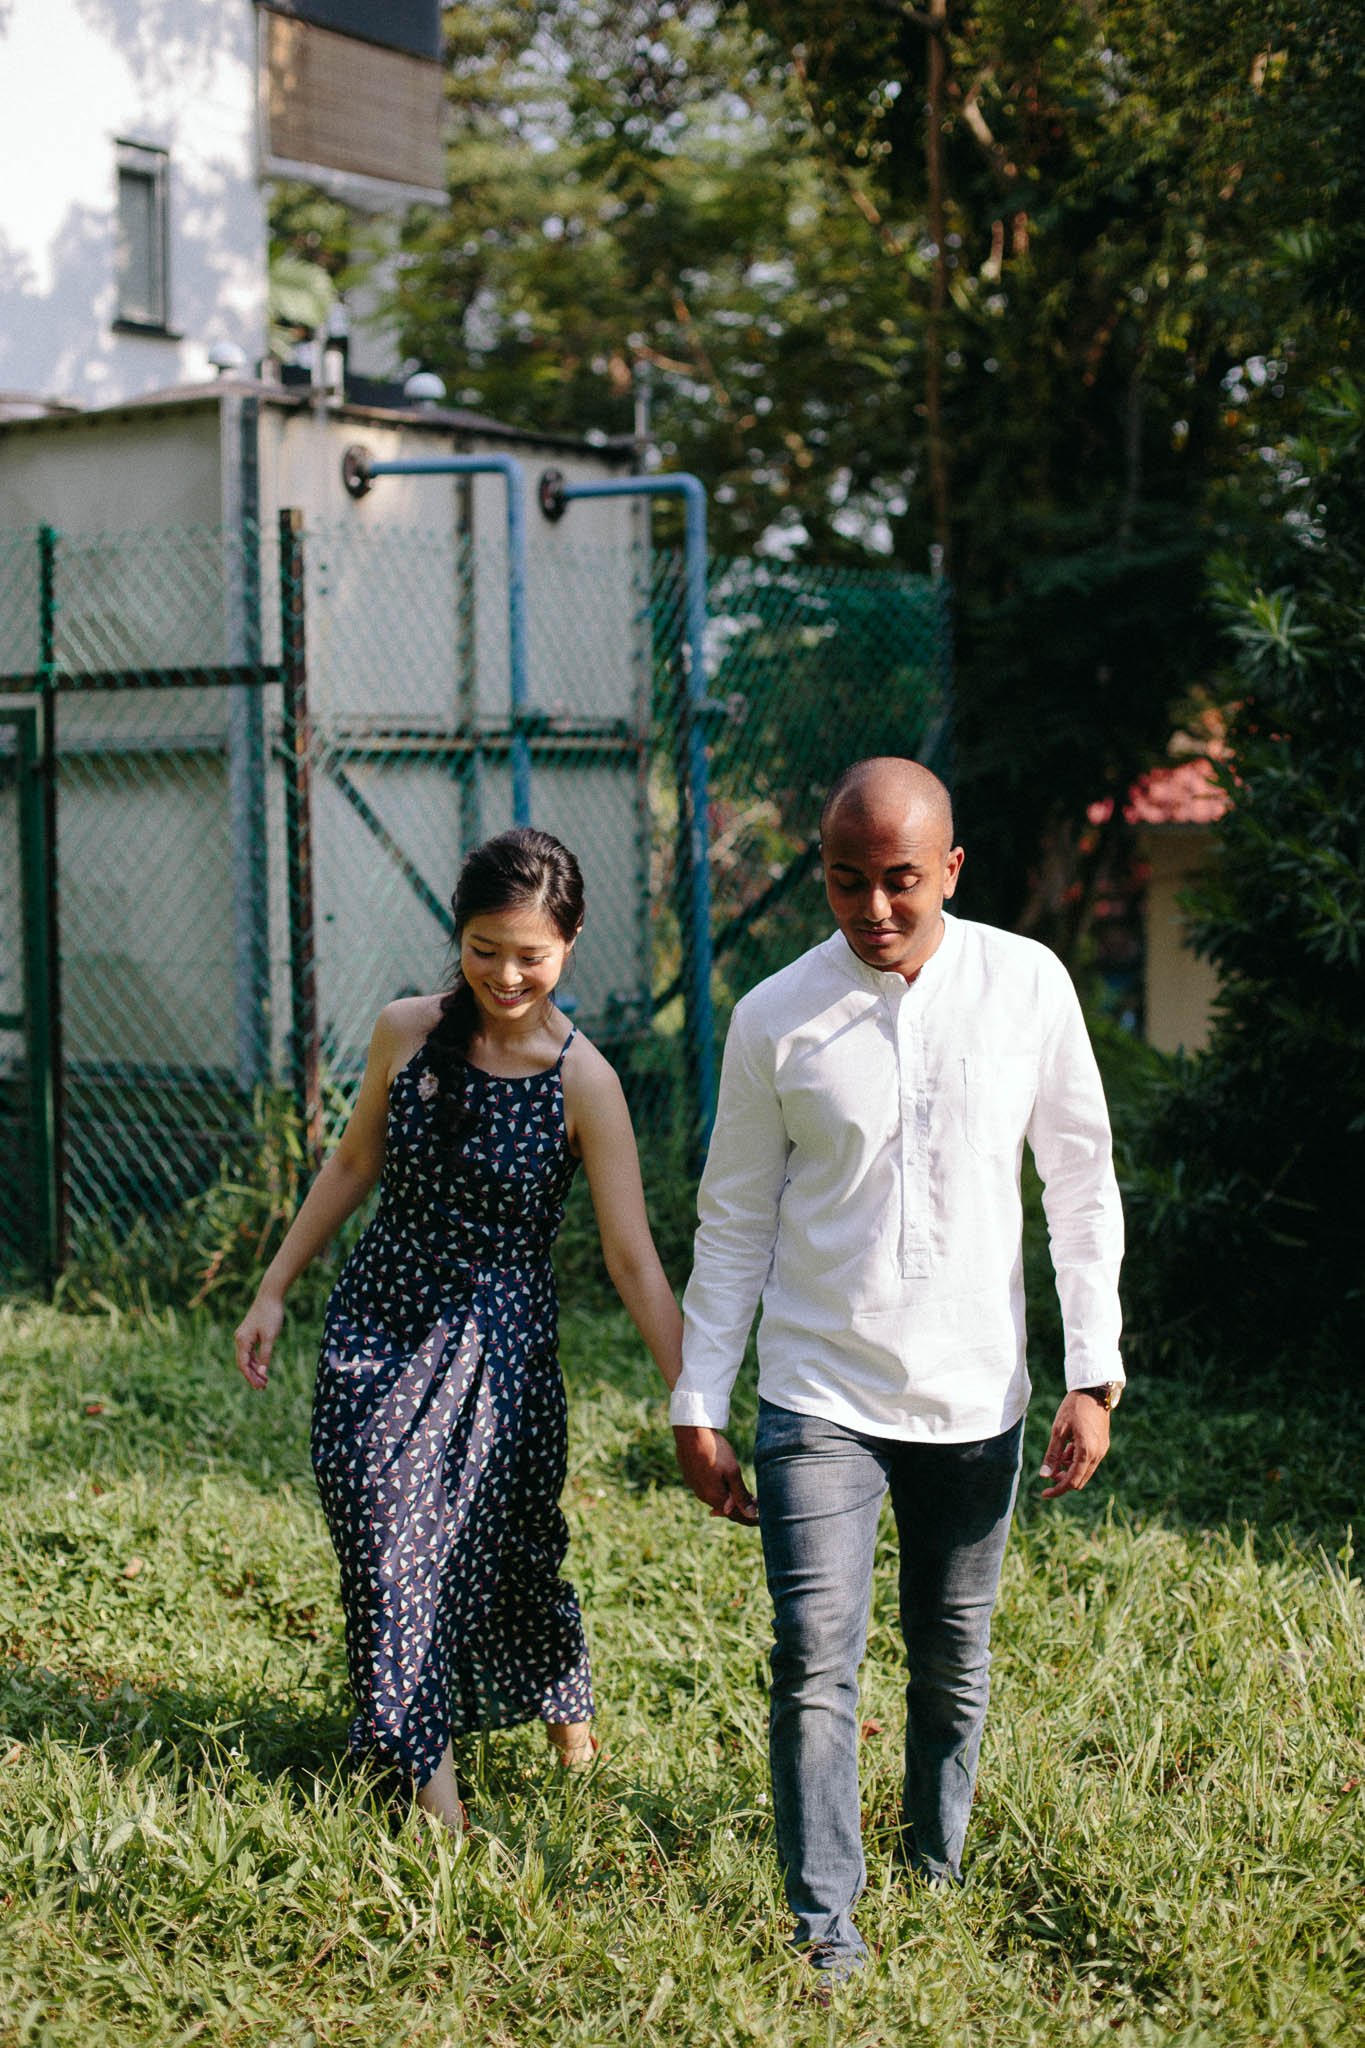 singapore-wedding-photographer-pre-wedding-jonathan-alicia-016.jpg